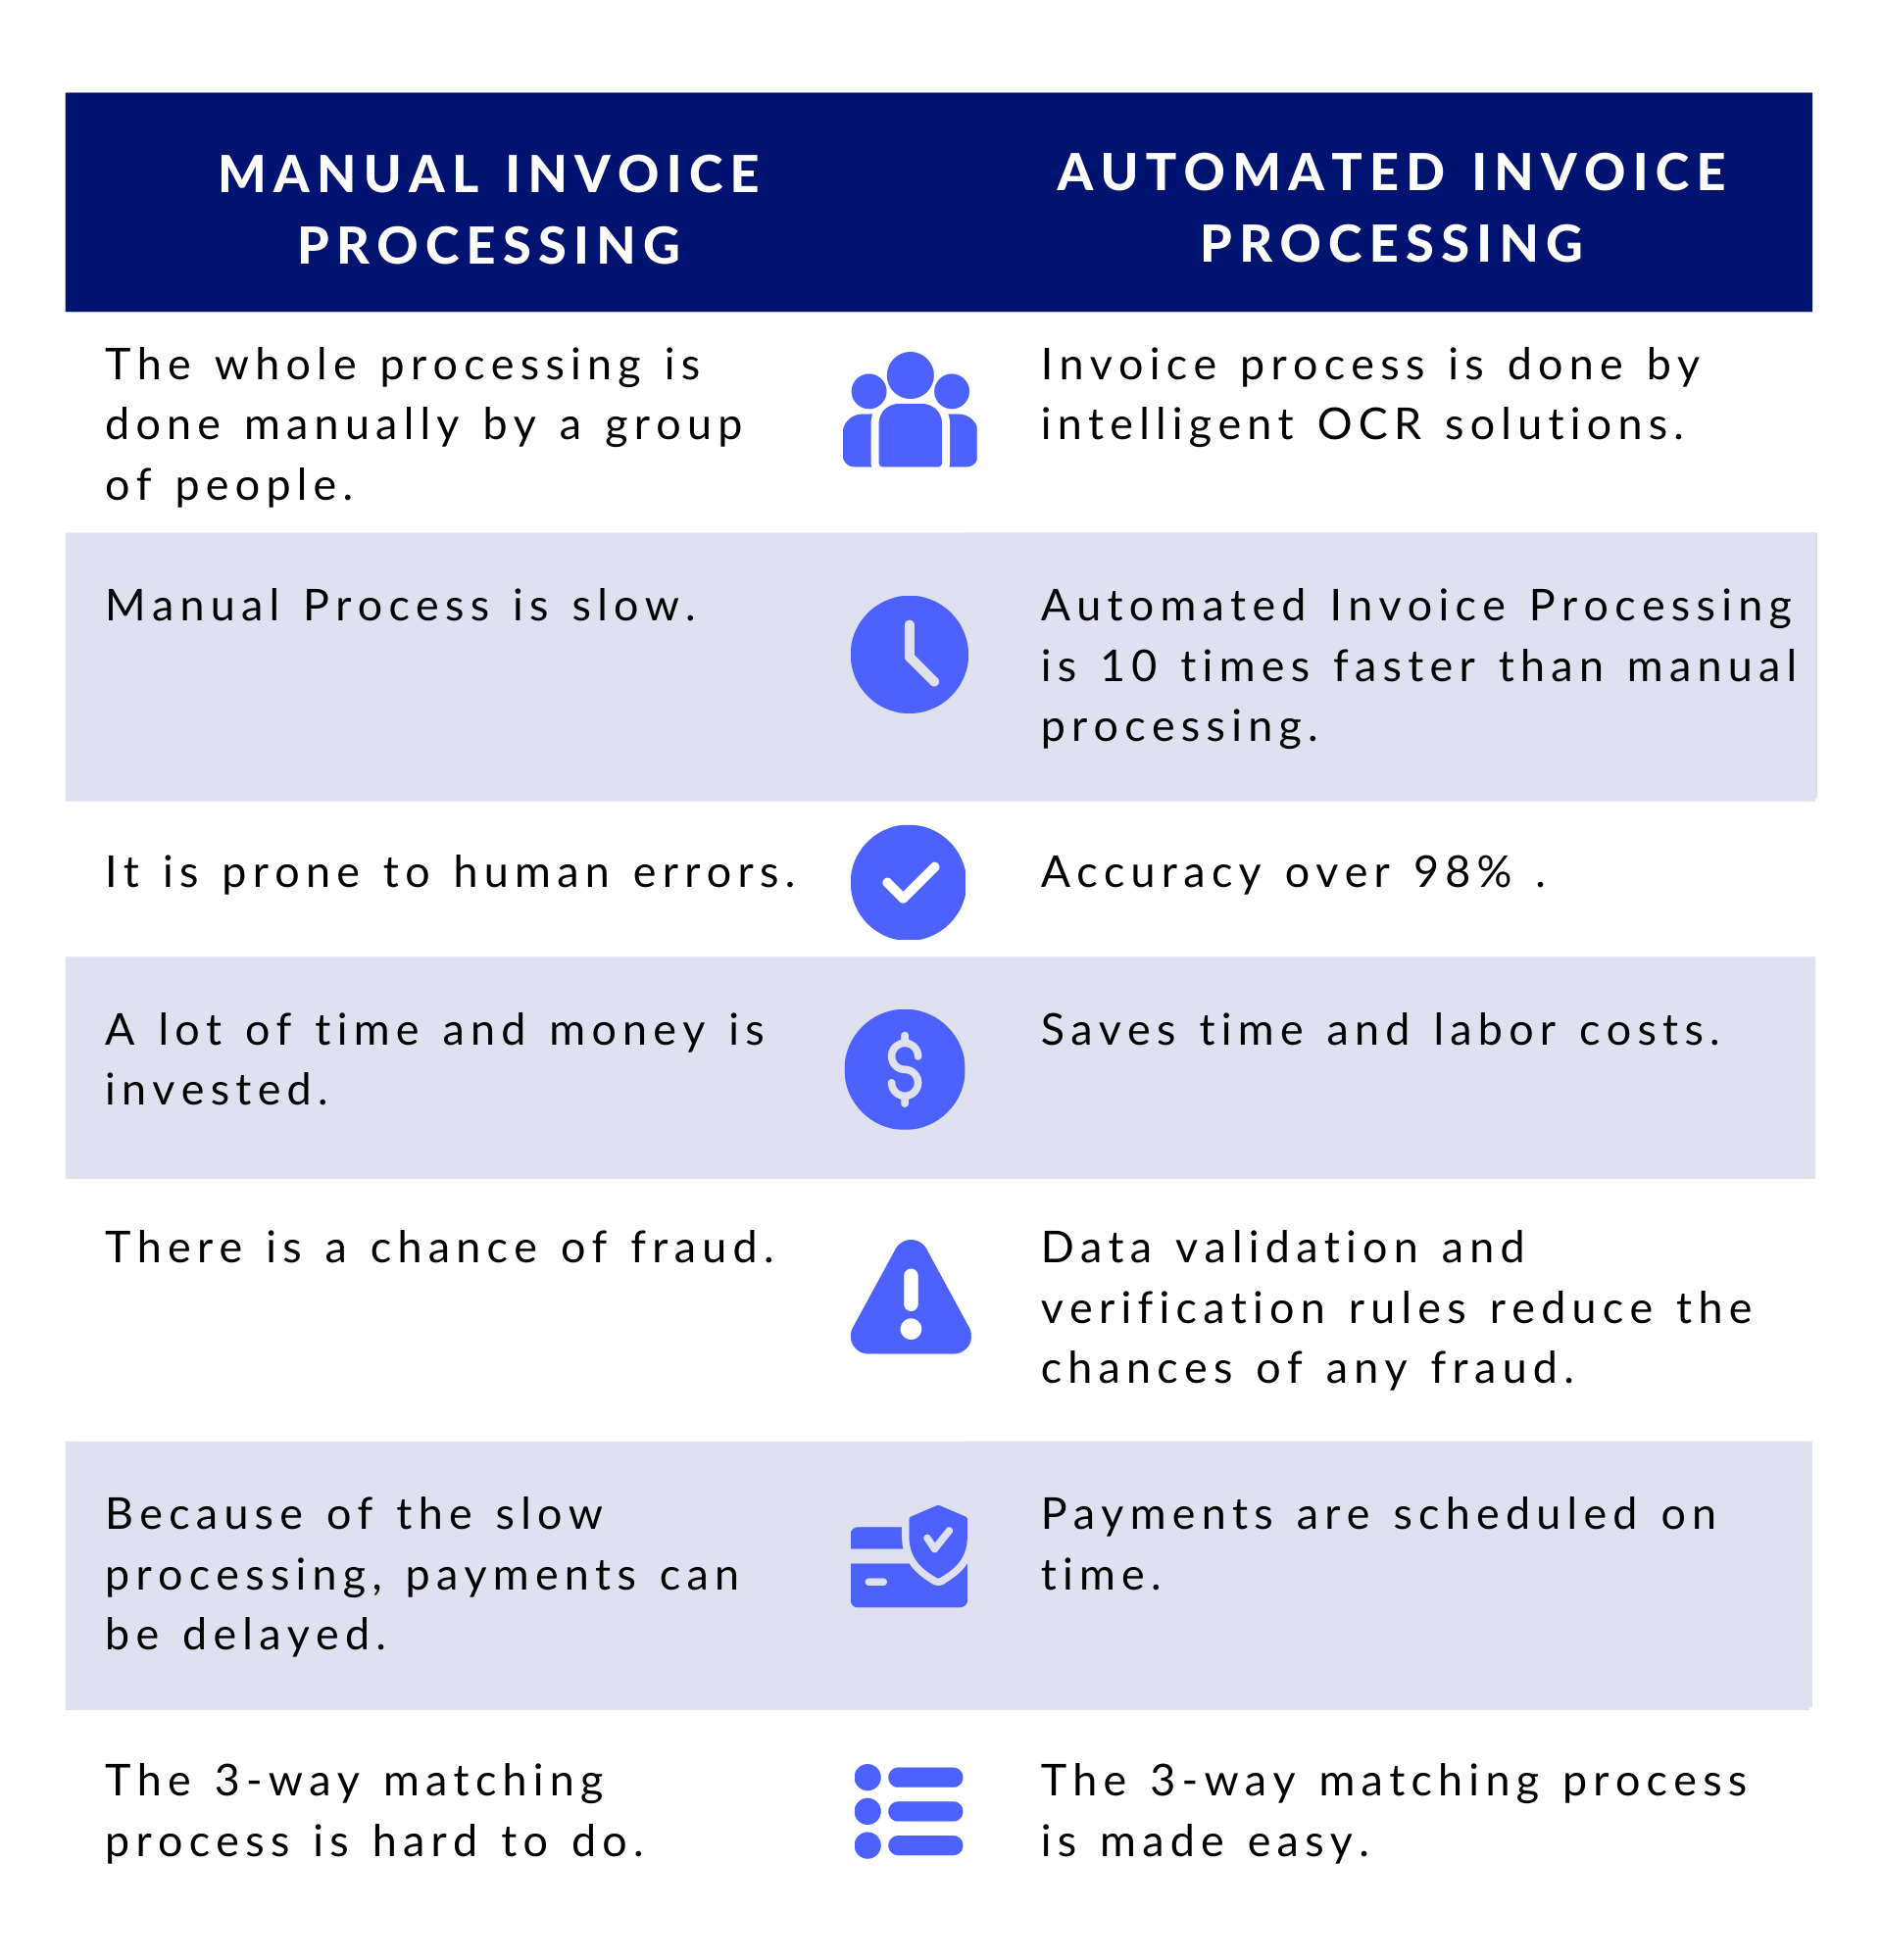 Manual vs Automated Invoice Processing